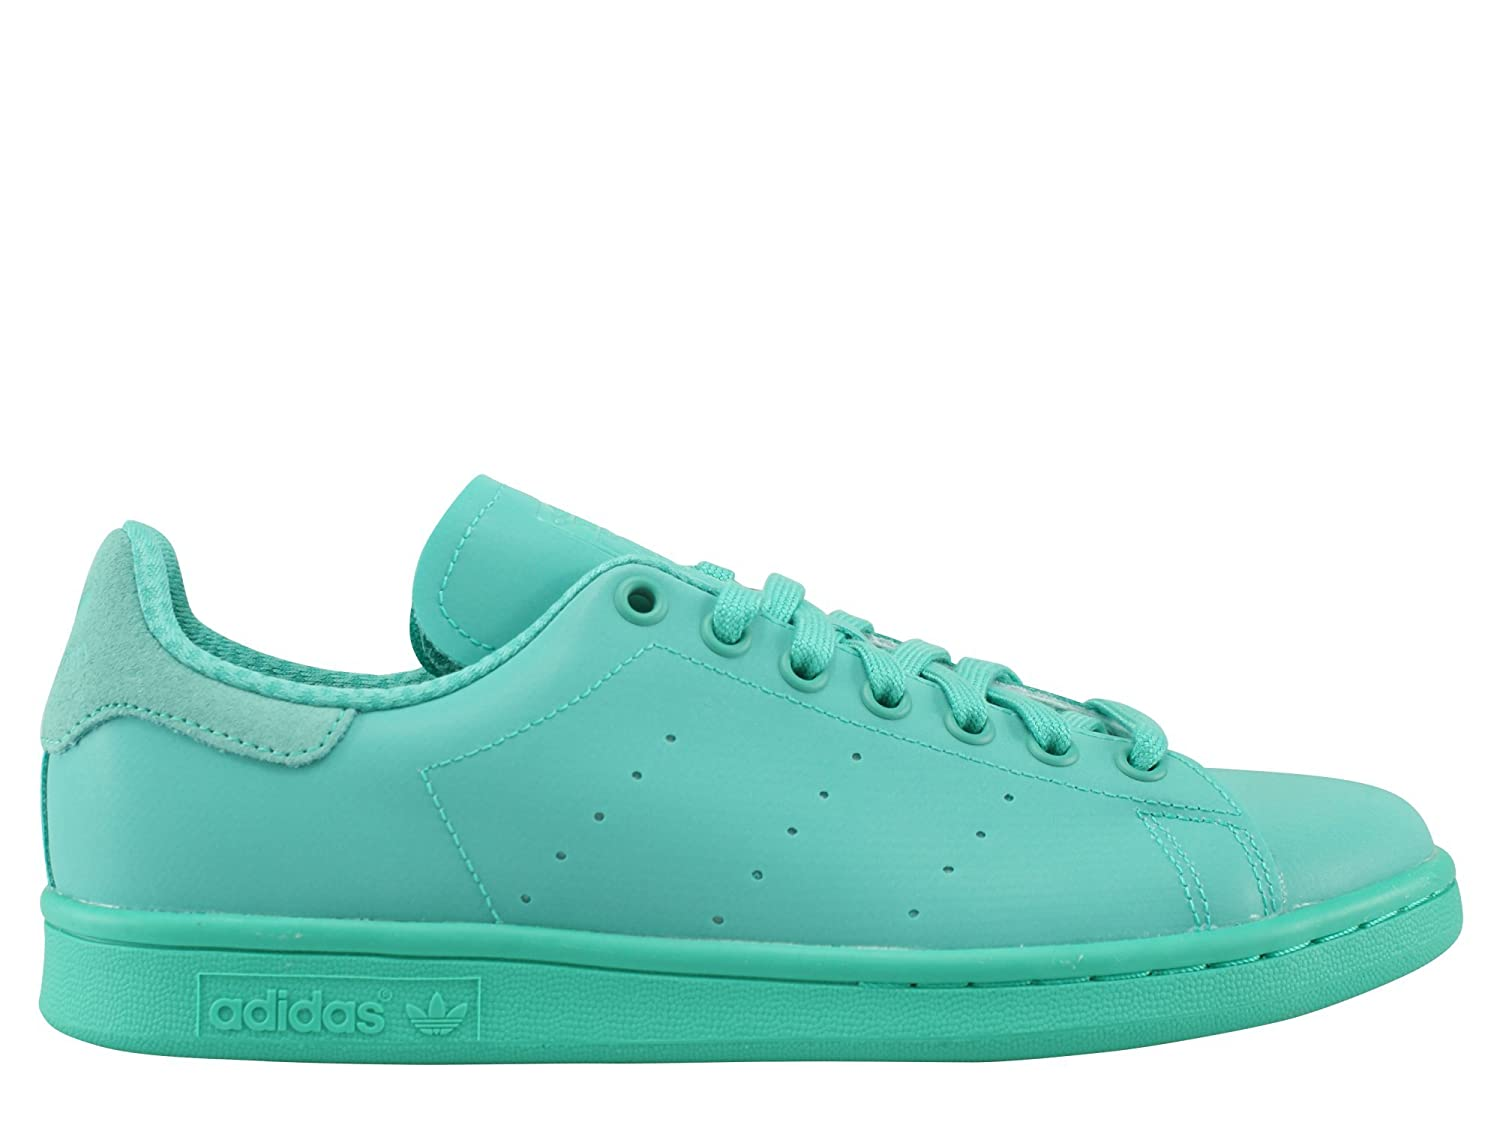 Adidas Stan Smith Baskets Mode Homme adidas Originals M20324